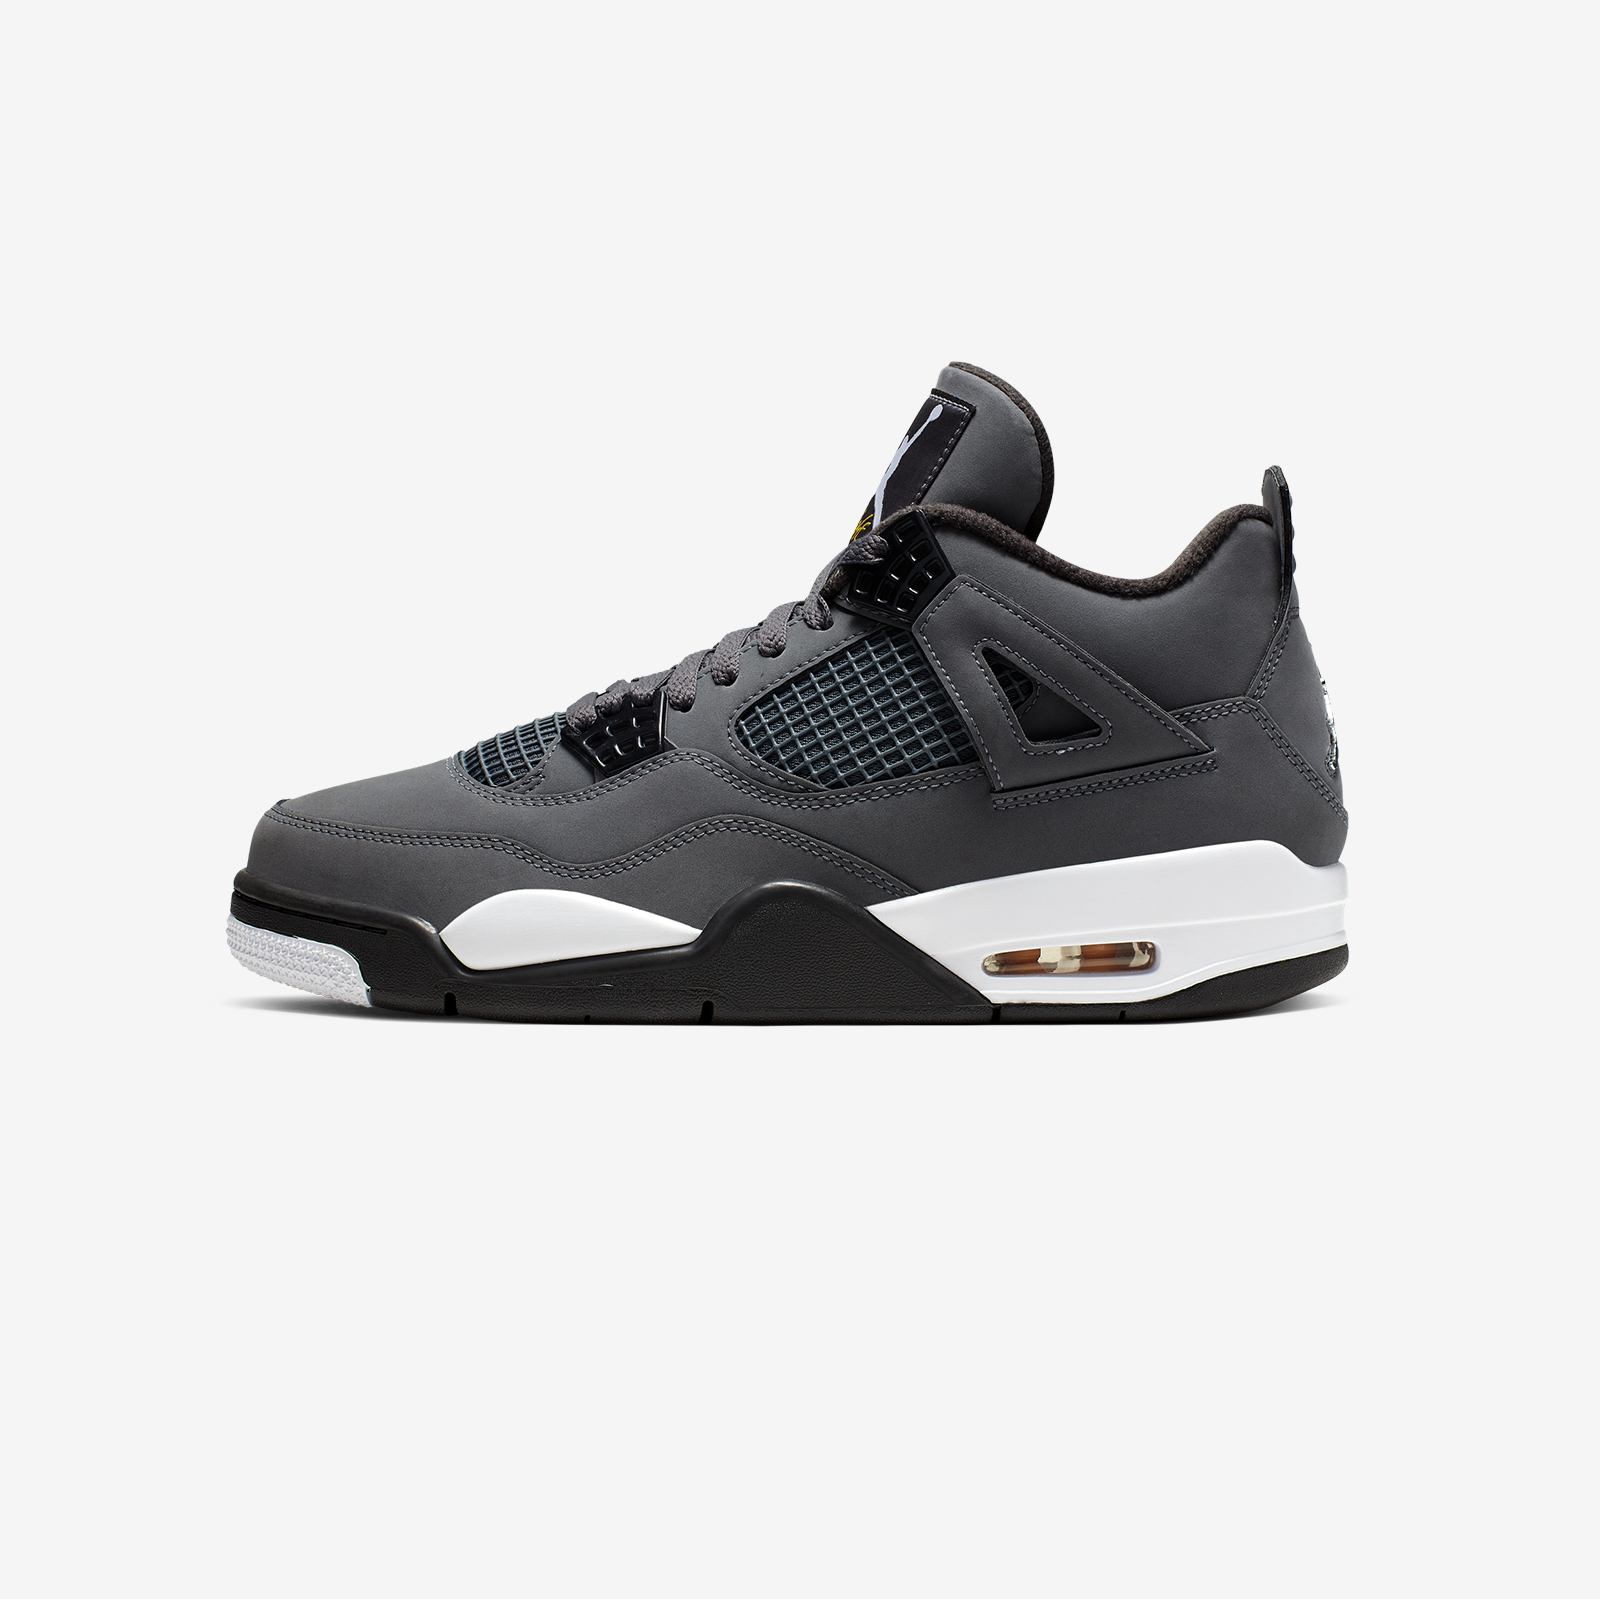 308497 007 Air Jordan 4 Retro Cool Grey 3